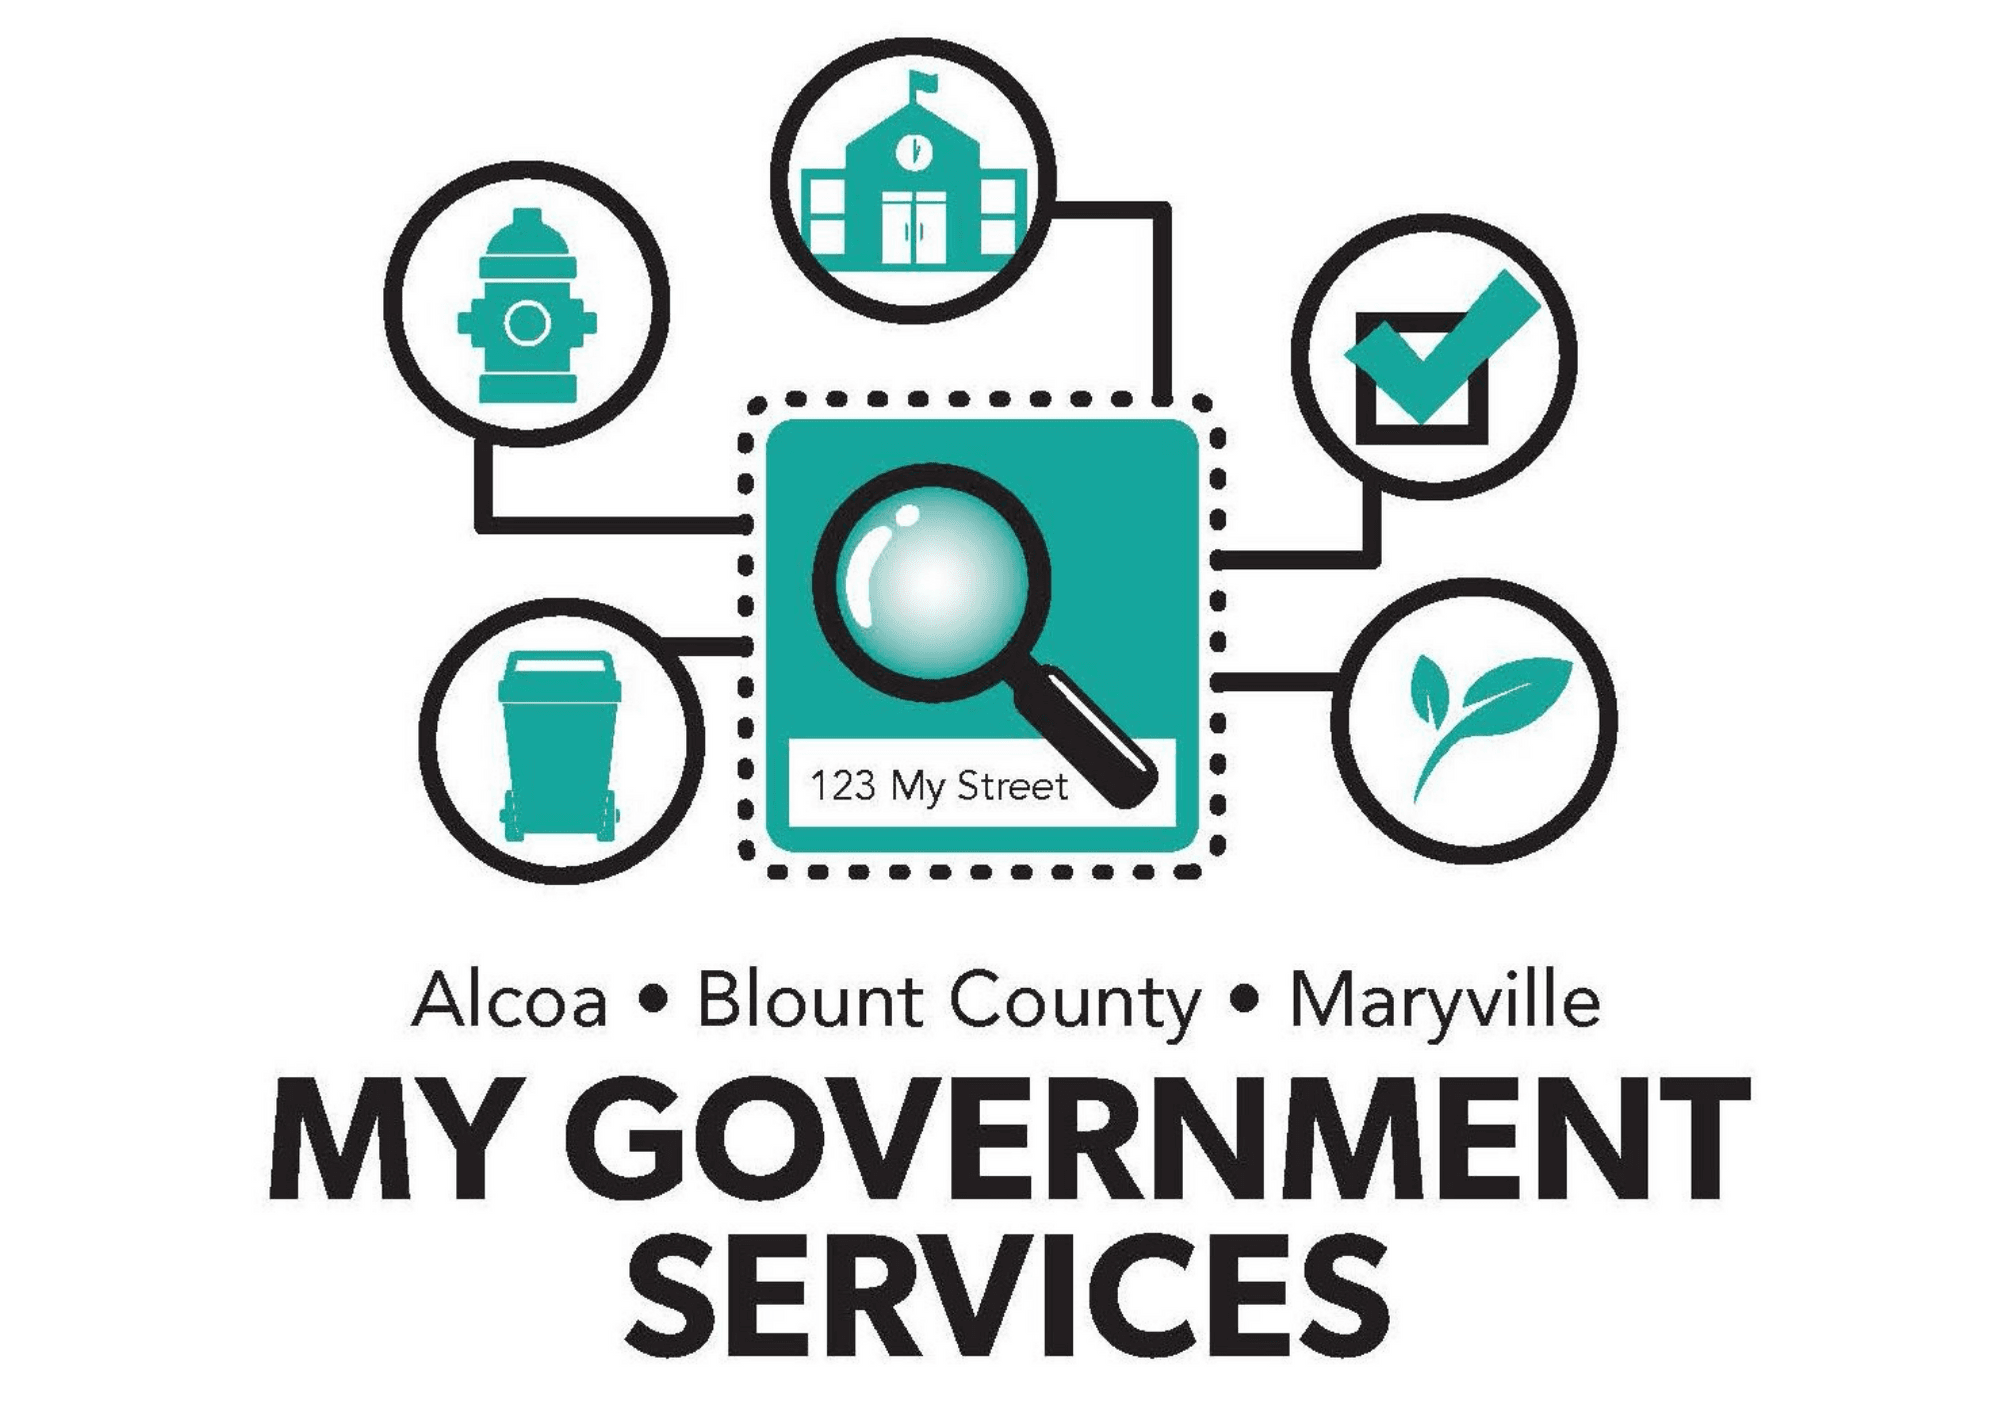 My Government Services